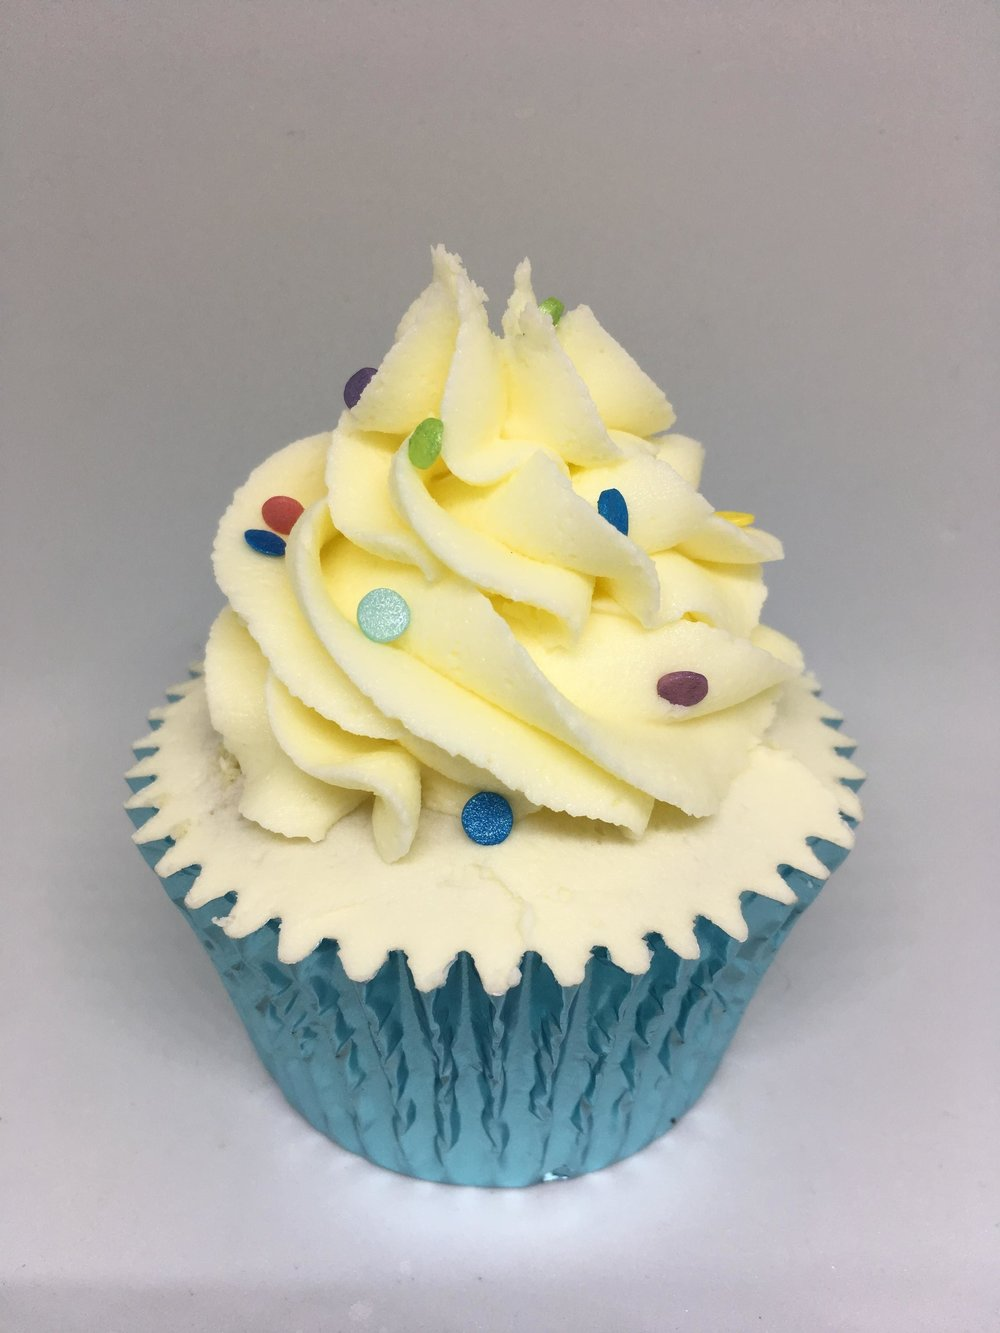 Classic Vanilla - A Rock the Bake vanilla cupcake topped with fluffy vanilla buttercream. Simple and Calssic but so good